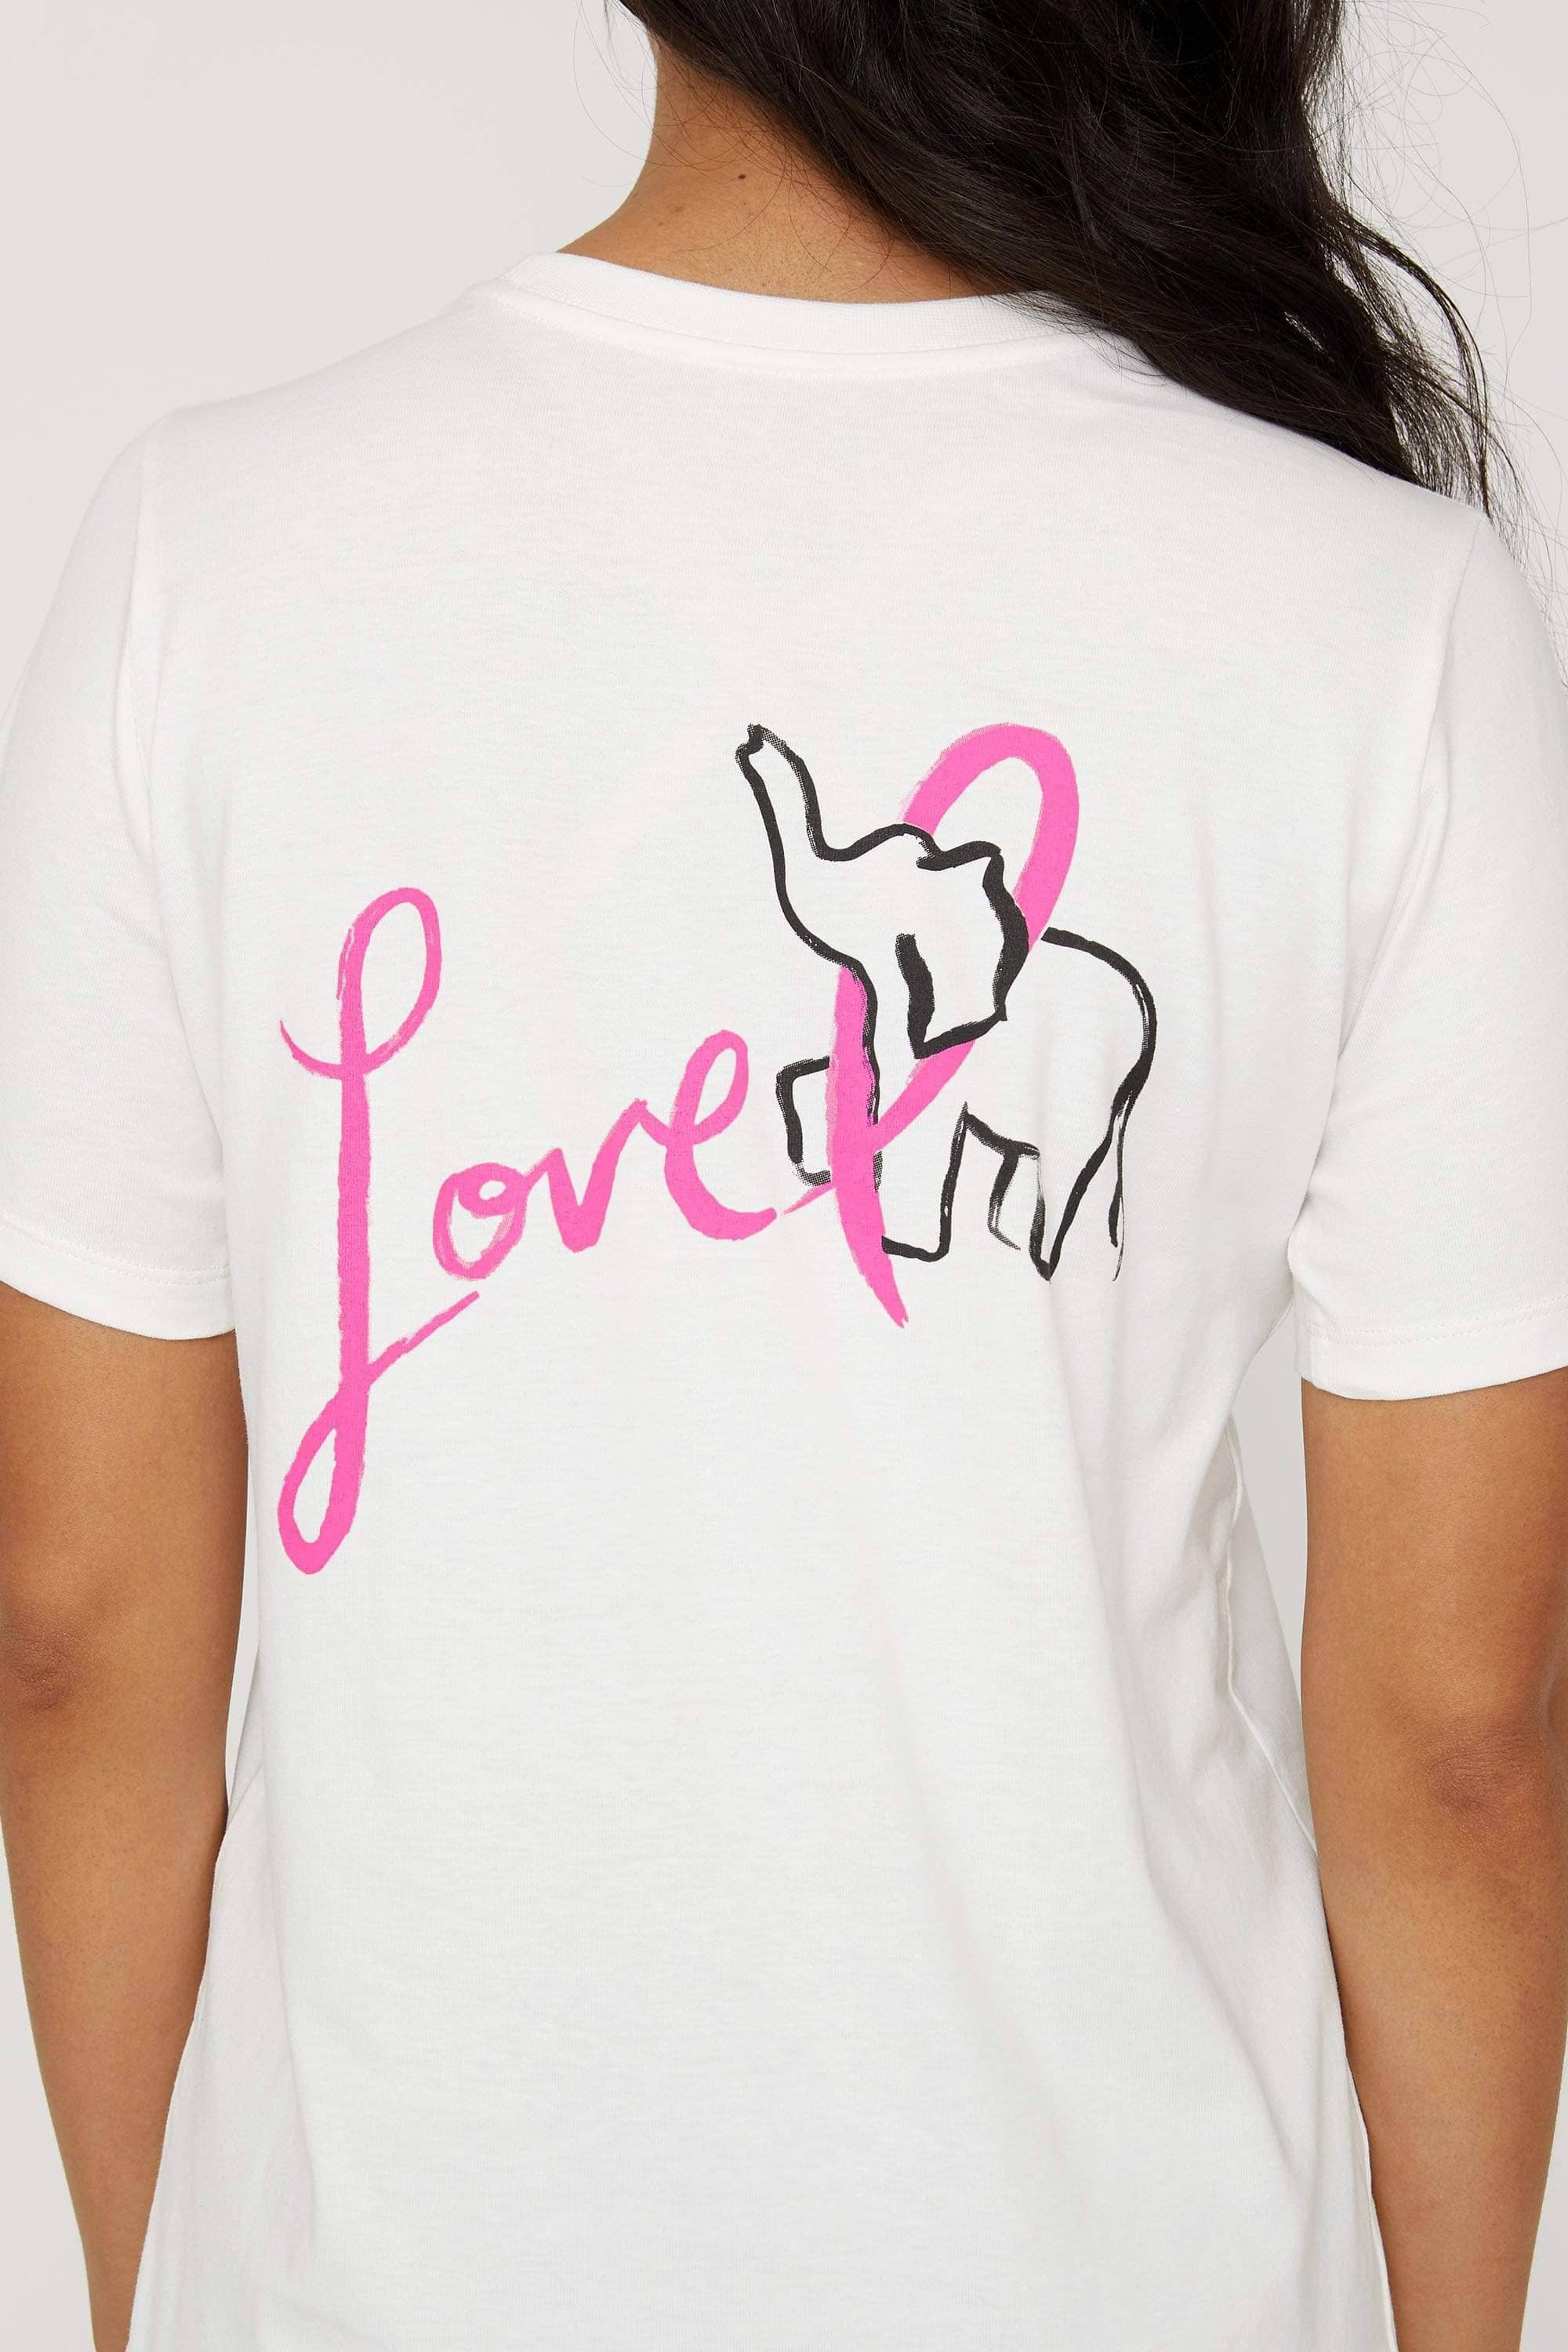 Hope is Love Ella Tee - Ivory Ella - Women's Short Sleeve Tees